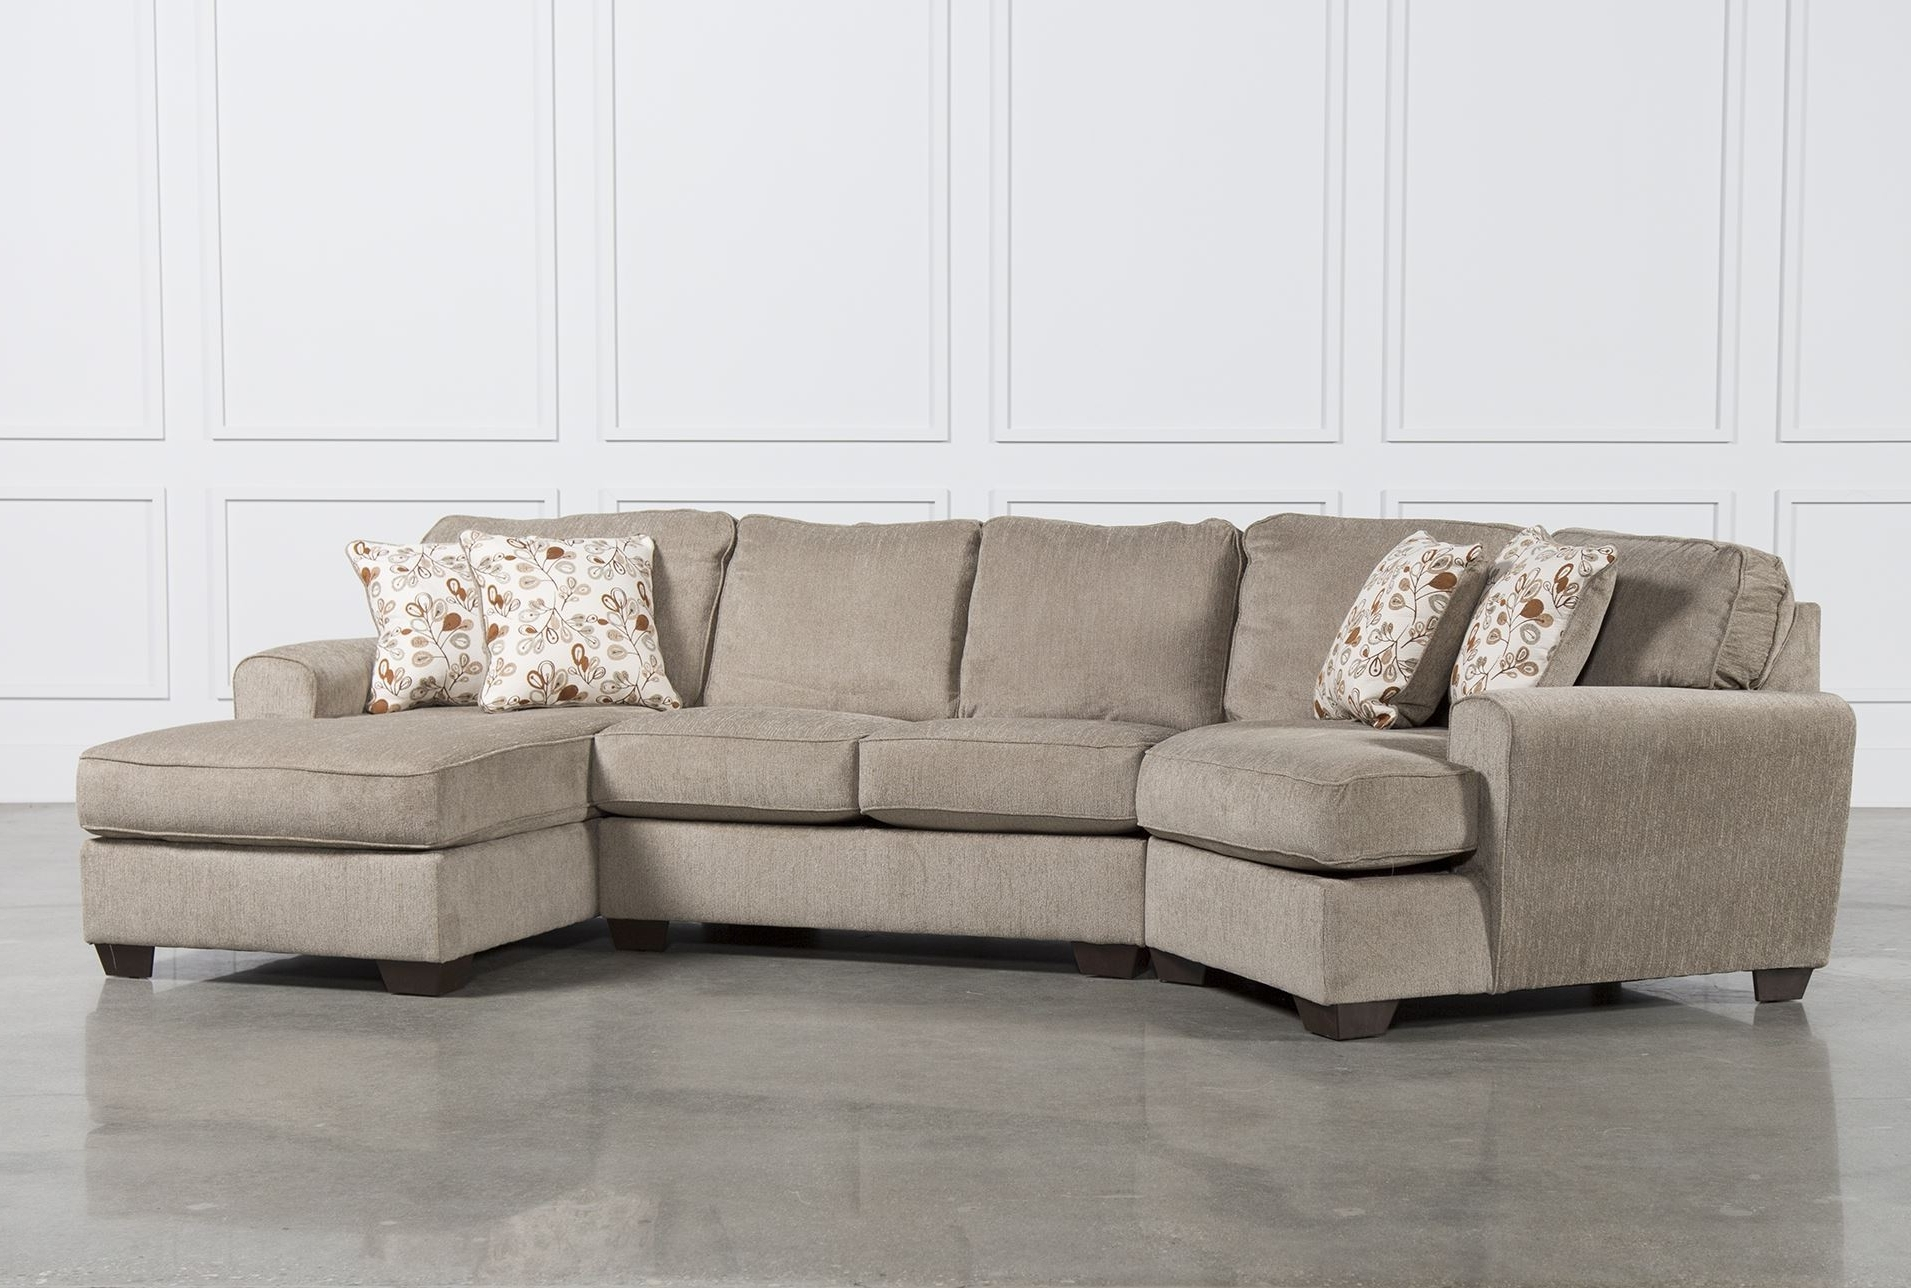 Gta Sectional Sofas Throughout Fashionable Furniture : Sectional Sofa Fabric Rc 216 088 Recliner Corner Couch (View 7 of 15)